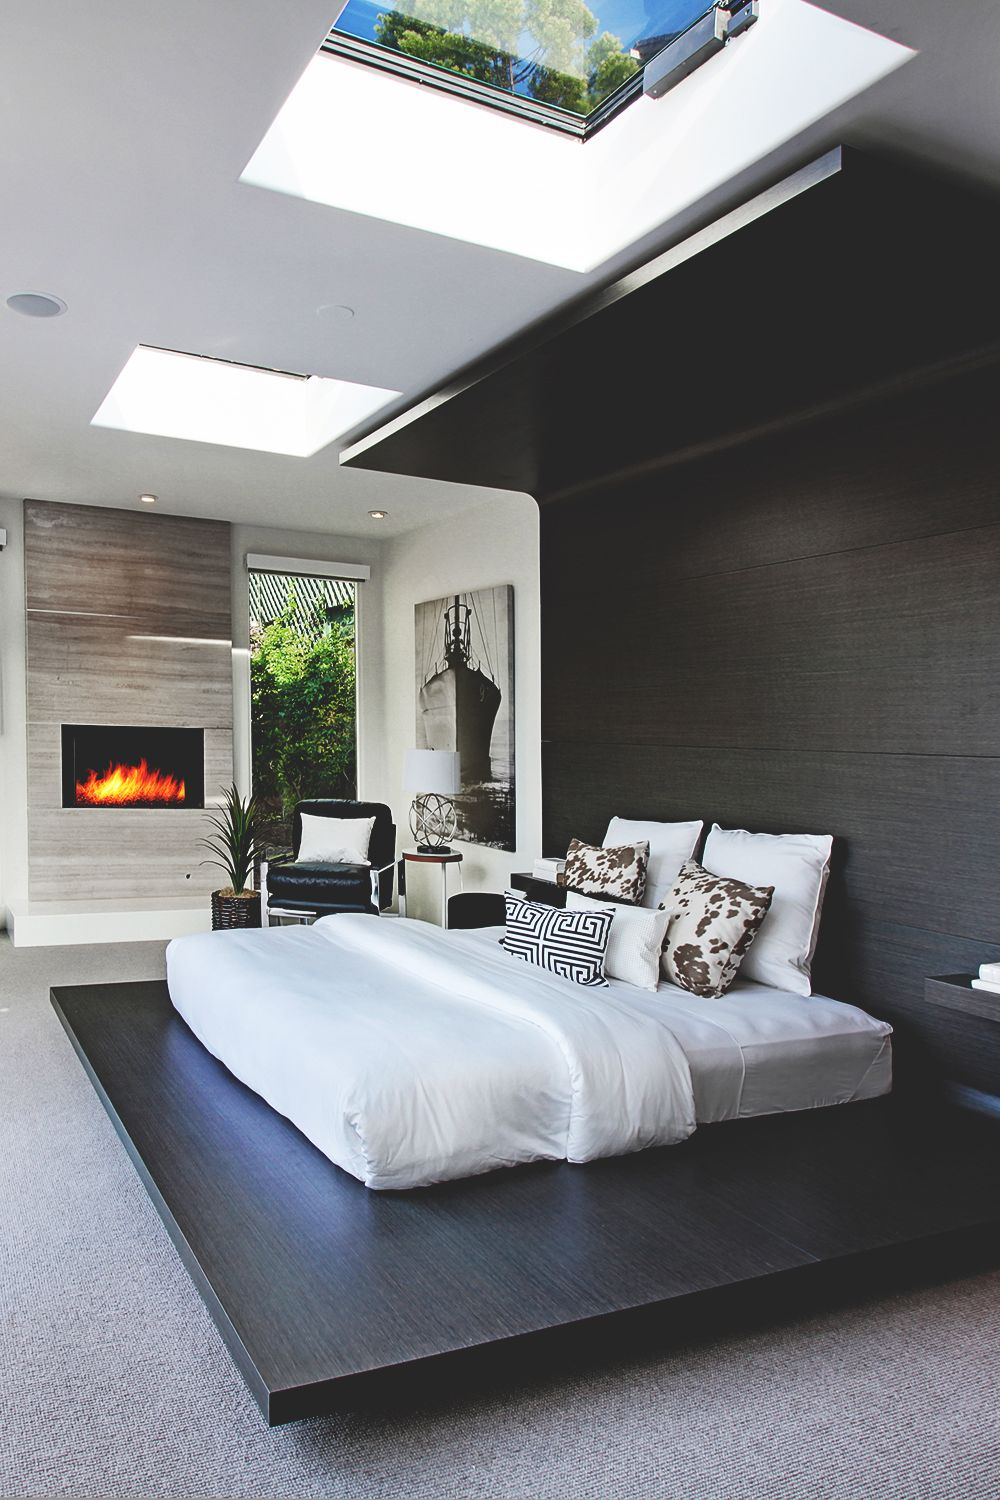 Schlafzimmer Modern Pinterest Pin By Maliza Mukungu On H Designs Pinterest Home Decor